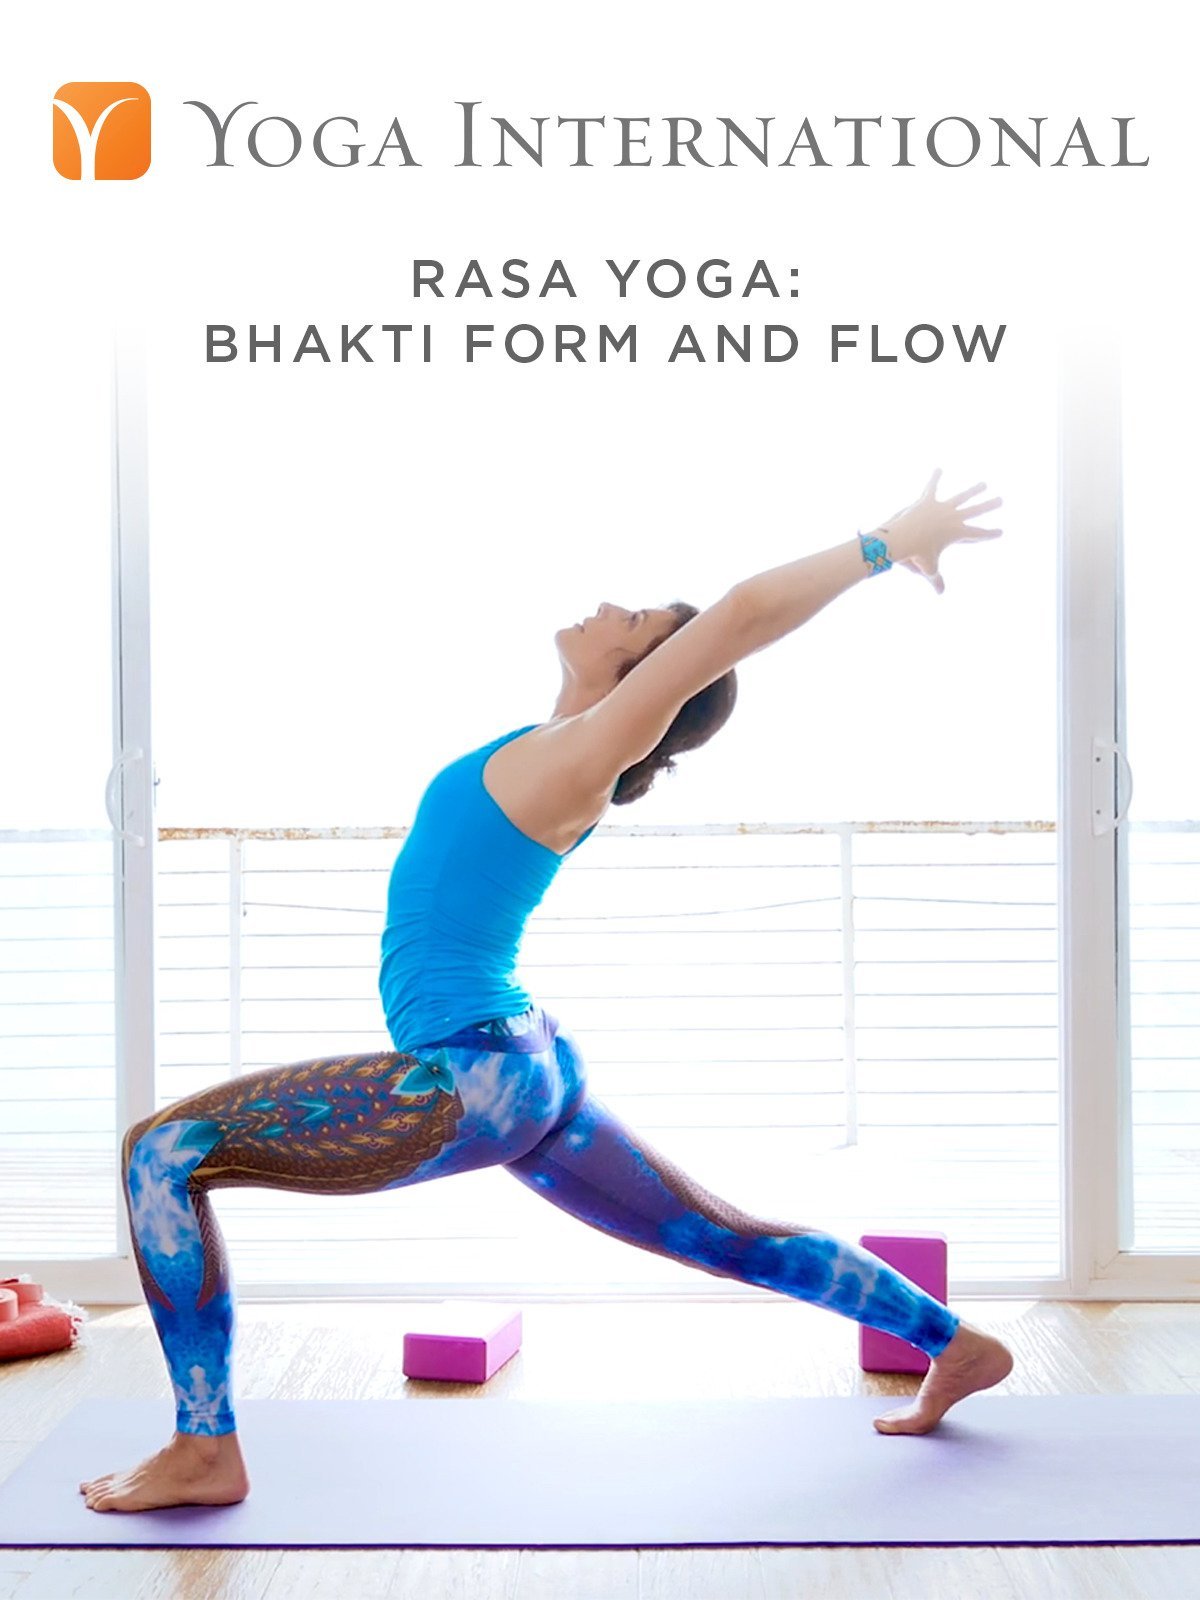 Rasa Yoga: Bhakti Form and Flow